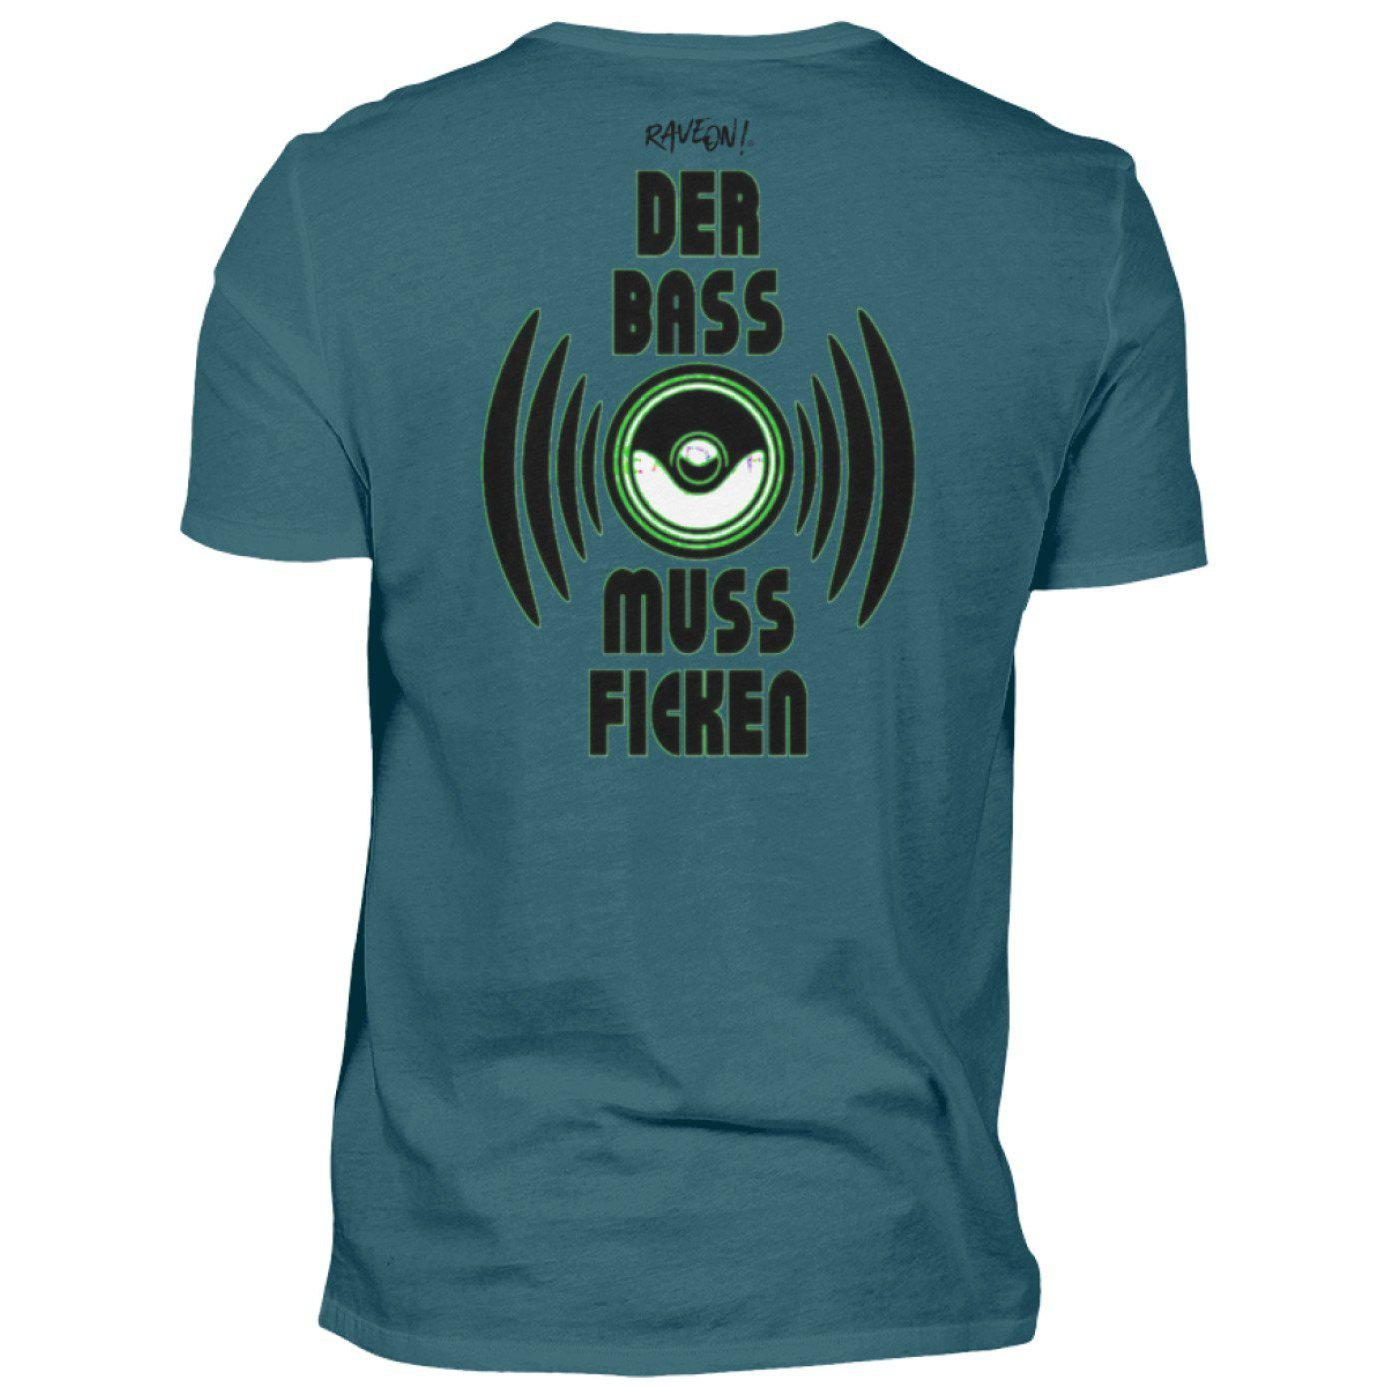 DER BASS MUSS F*n! Back Side - Rave On!® - Herren Shirt Herren Basic T-Shirt Diva Blue / S - Rave On!® der Club & Techno Szene Shop für Coole Junge Mode Streetwear Style & Fashion Outfits + Sexy Festival 420 Stuff